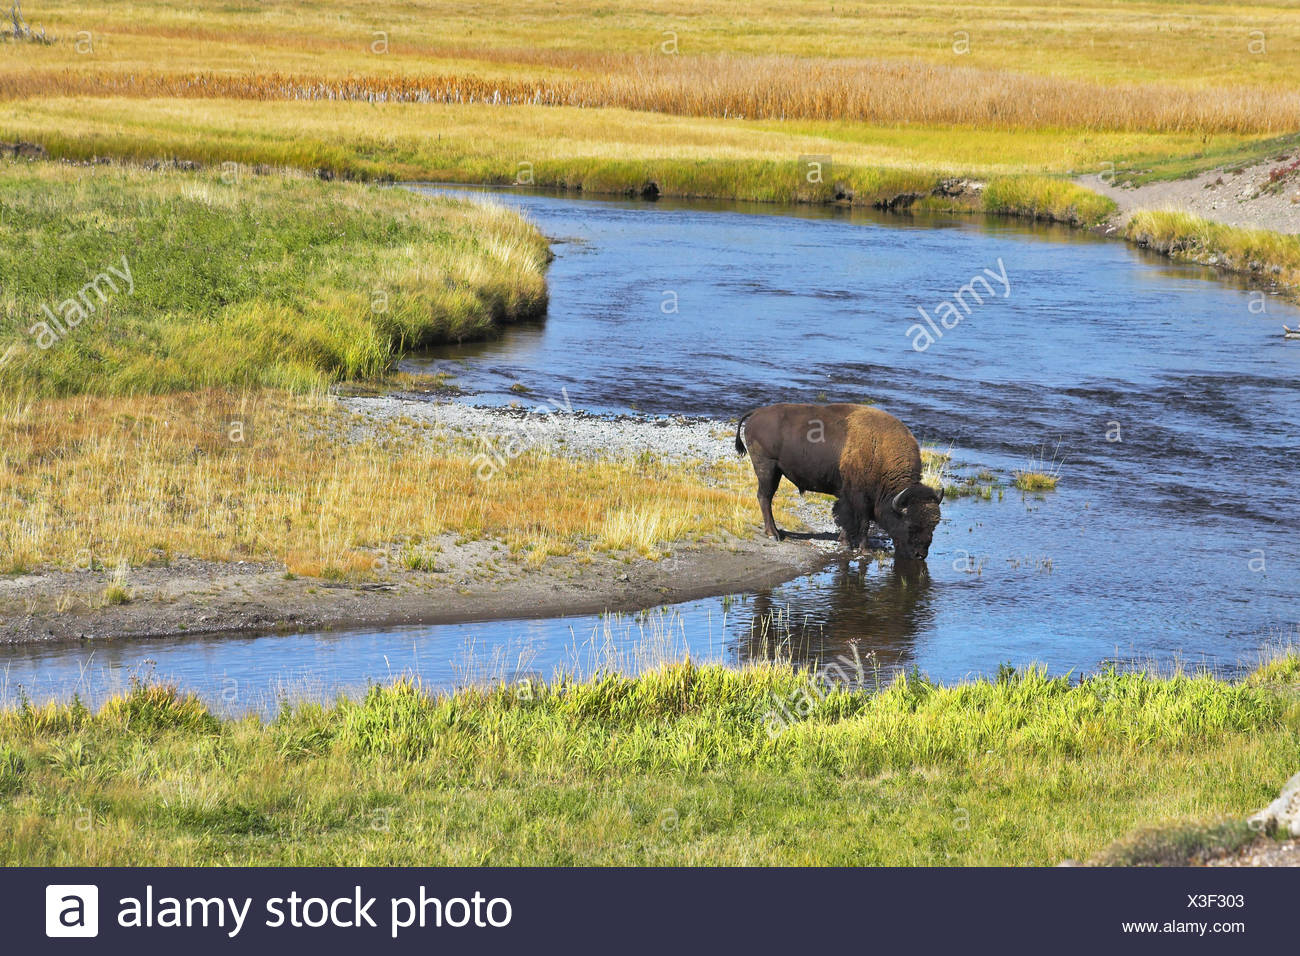 The bison drinks - Stock Image